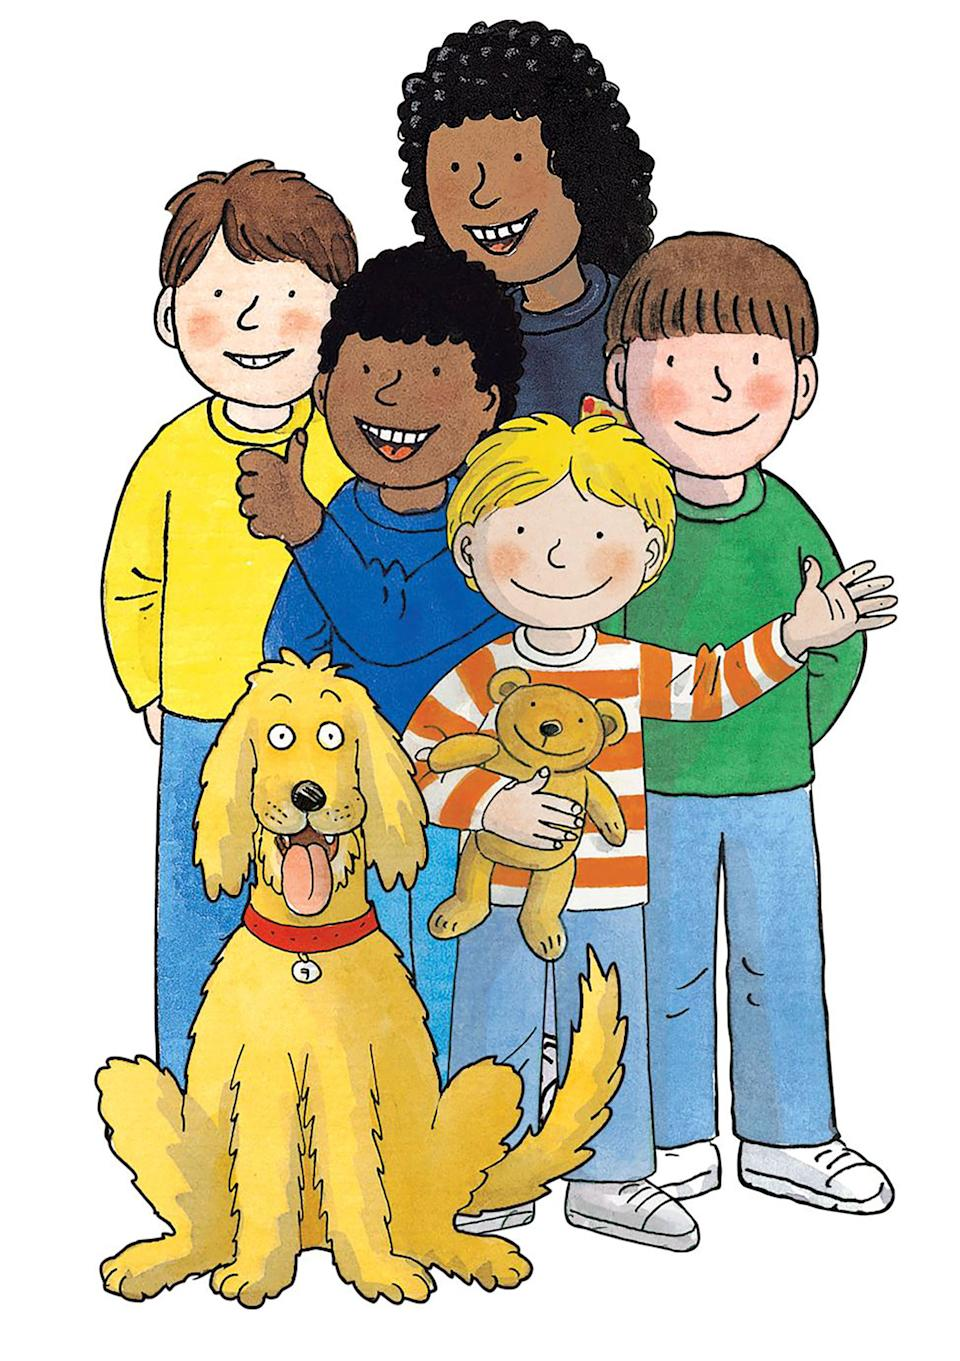 Biff, Chip, Kipper and Floppy with friends Wilf and Wilma as they appear in the books' illustrations. (Oxford Owl)